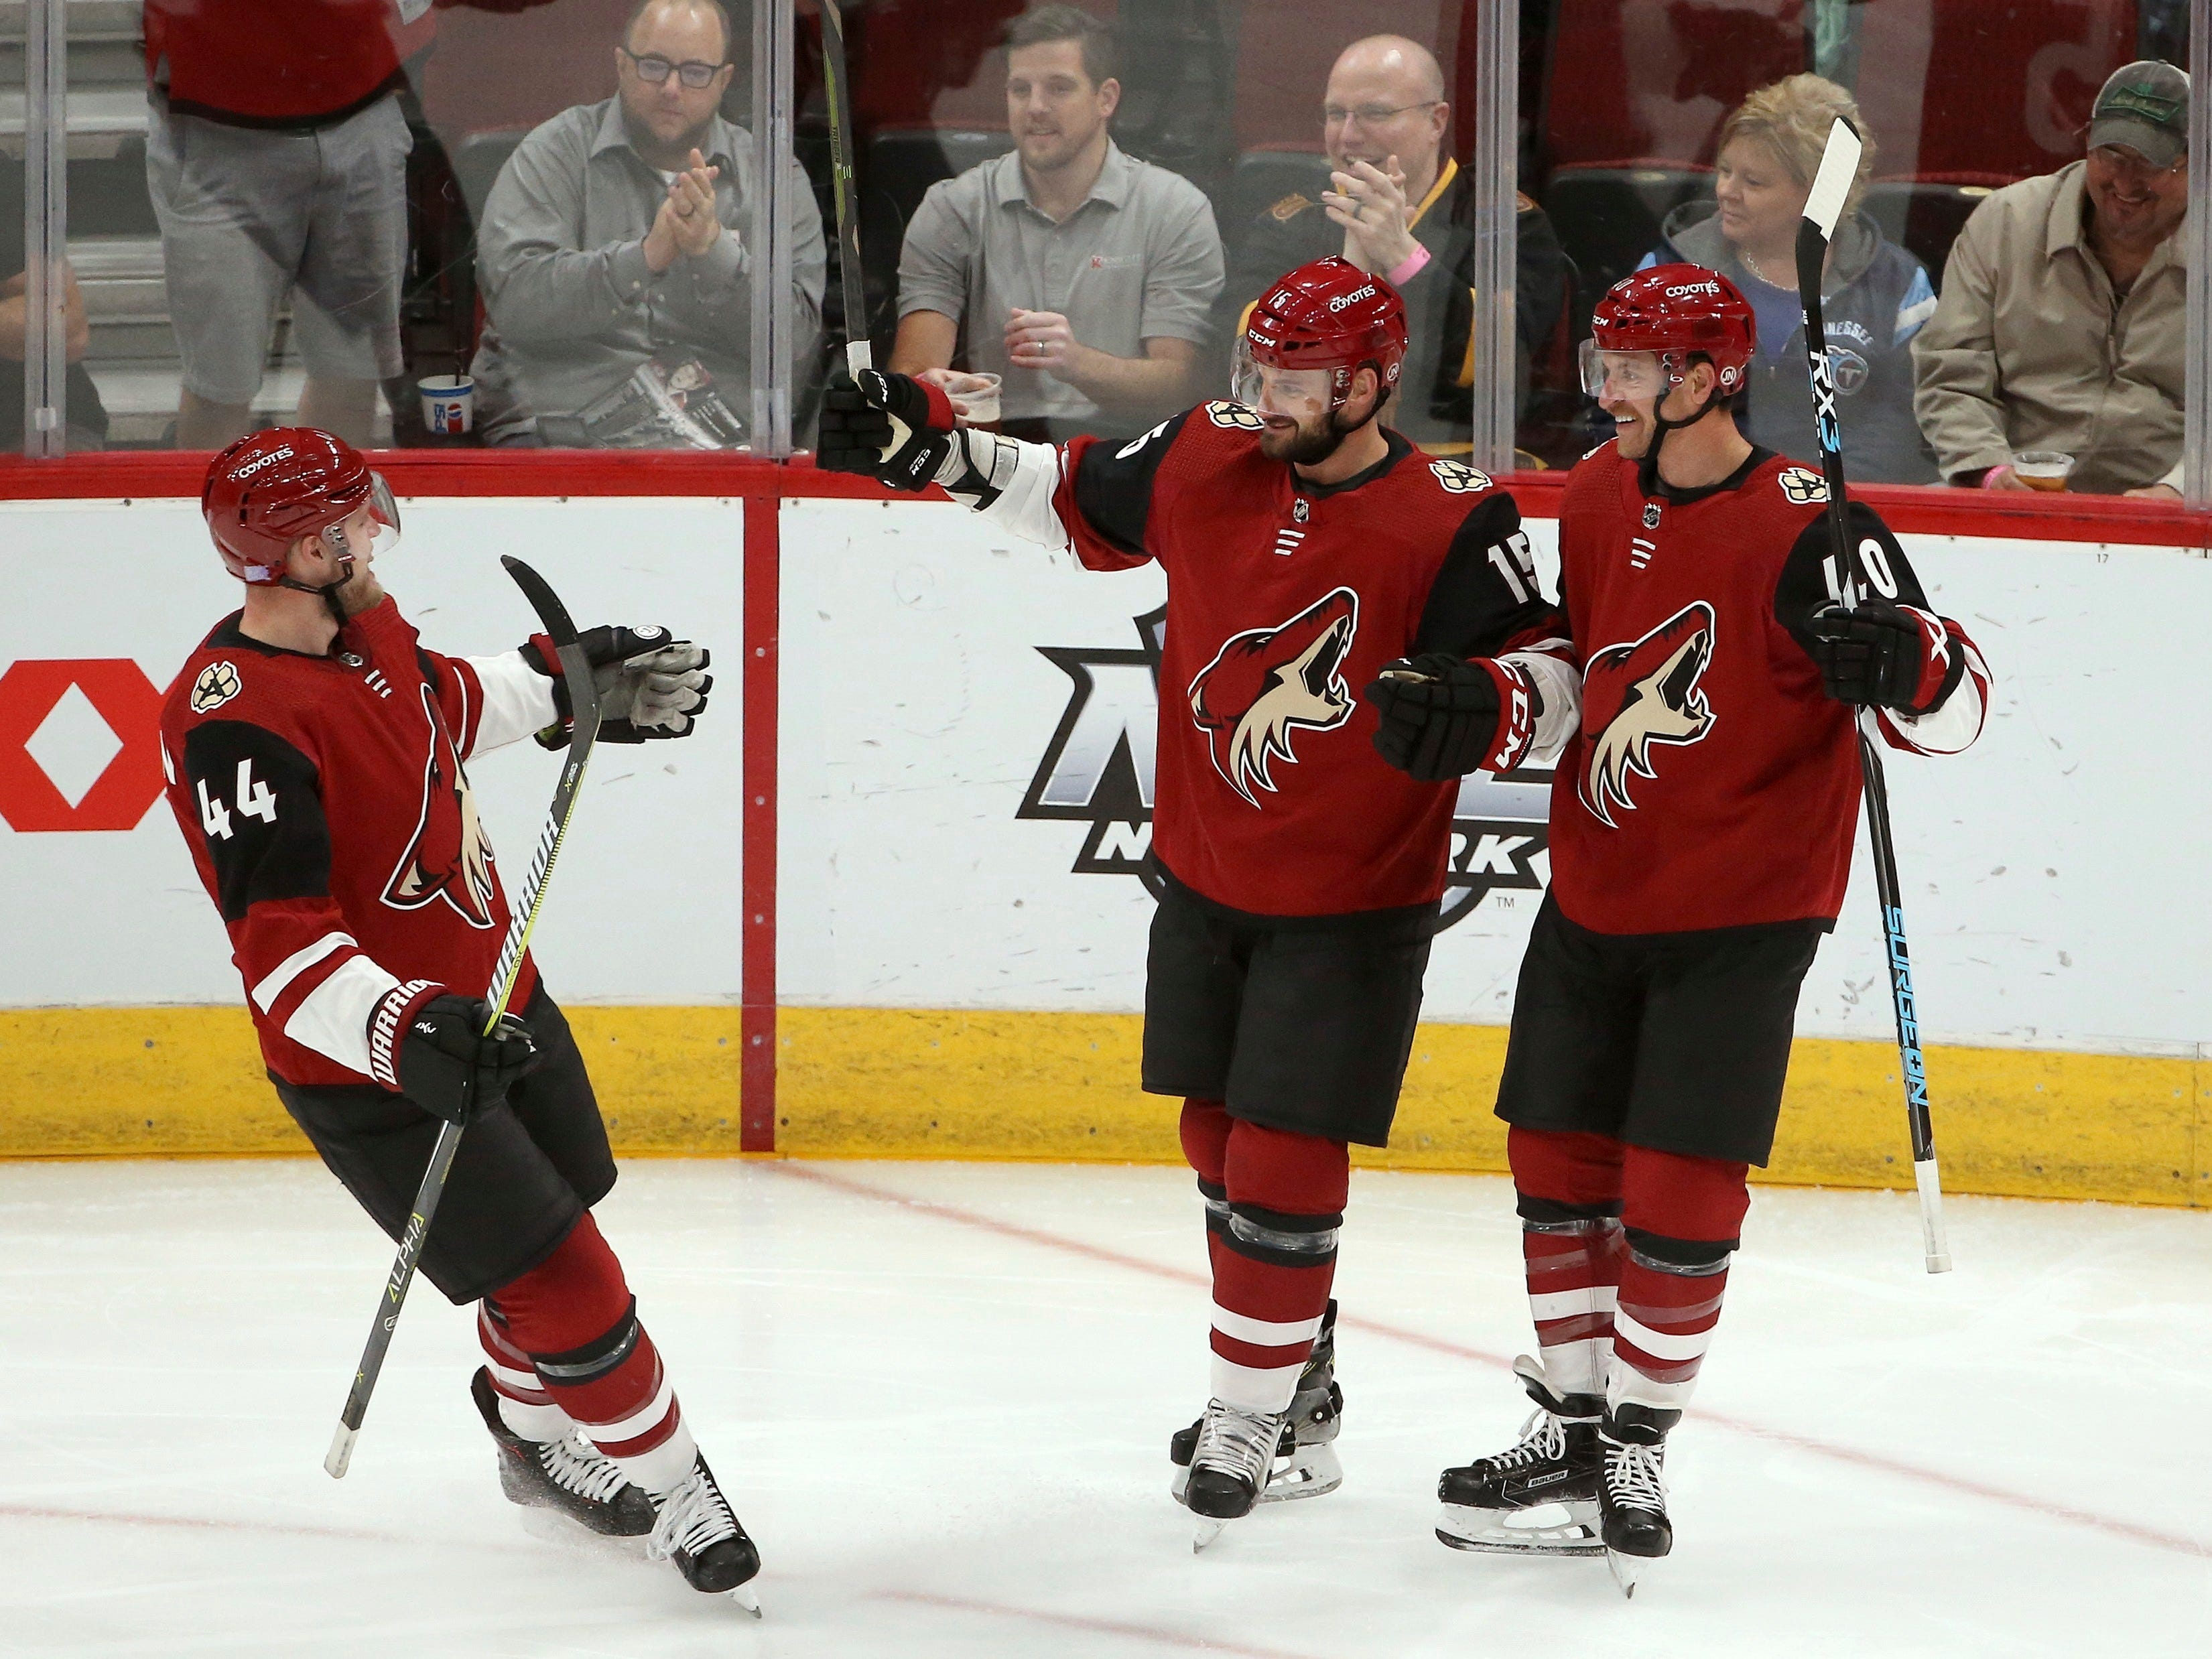 Arizona Coyotes right wing Michael Grabner (40) celebrates his goal against the Nashville Predators with defenseman Kevin Connauton (44) and center Brad Richardson (15) during the first period of an NHL hockey game Thursday, Nov. 15, 2018, in Glendale, Ariz. (AP Photo/Ross D. Franklin)